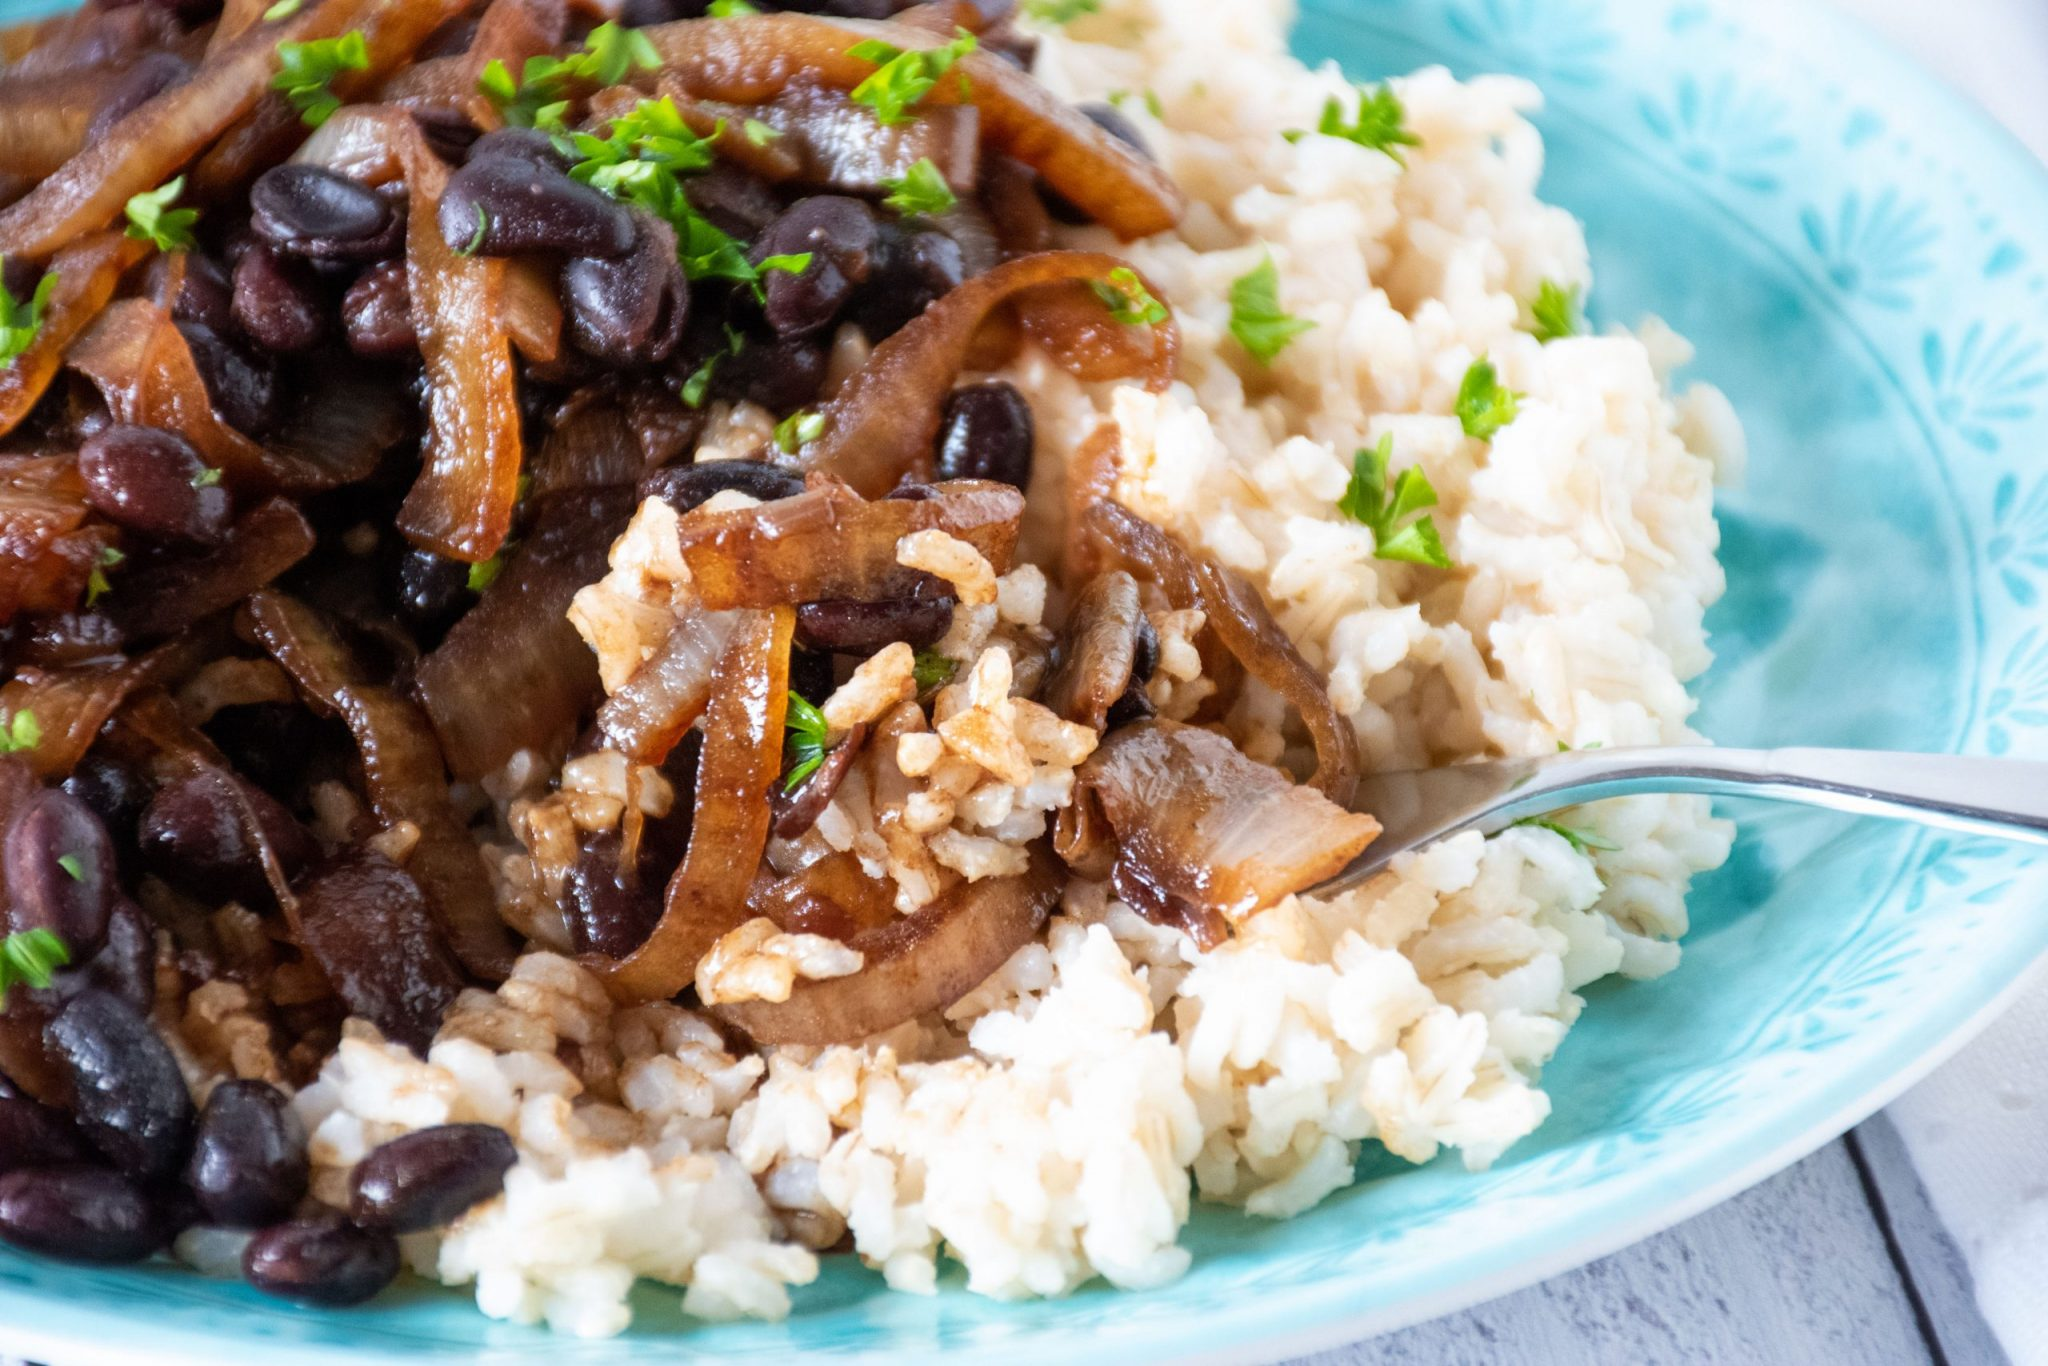 Close up of Balsamic glazed onions and black beans on a blue plate, with a fork.